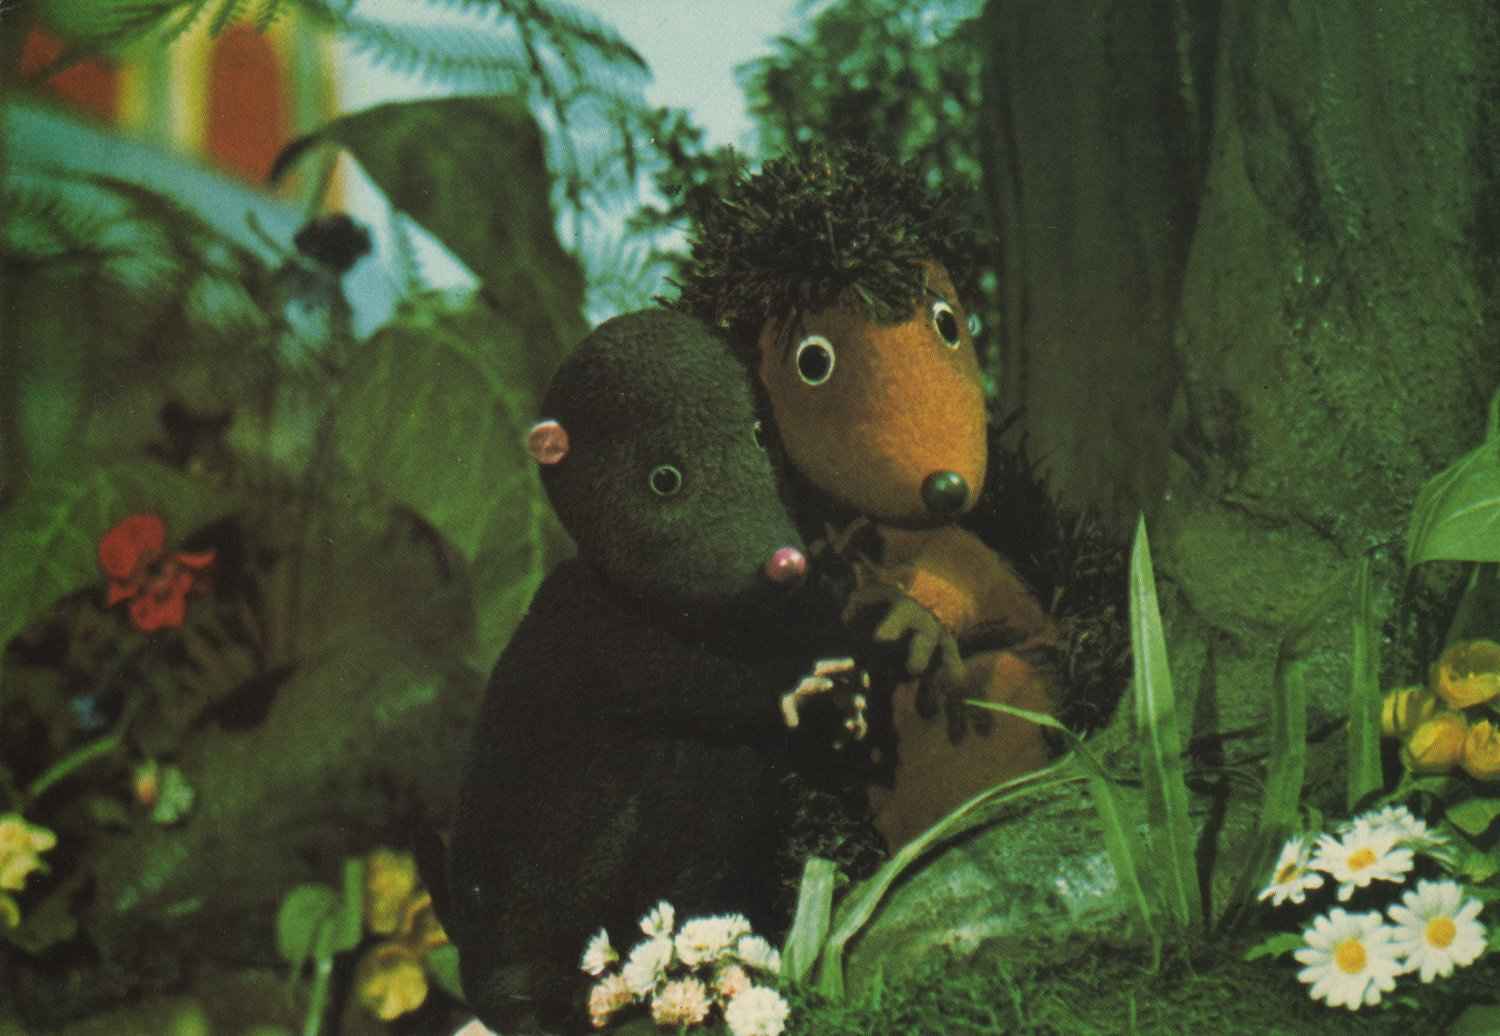 <em>Mo and Hedge</em> (années 1970), une production de la BBC créée par Playboard Puppets. Photo réproduite avec l'aimable autorisation de Ian Allen, Playboard Puppets